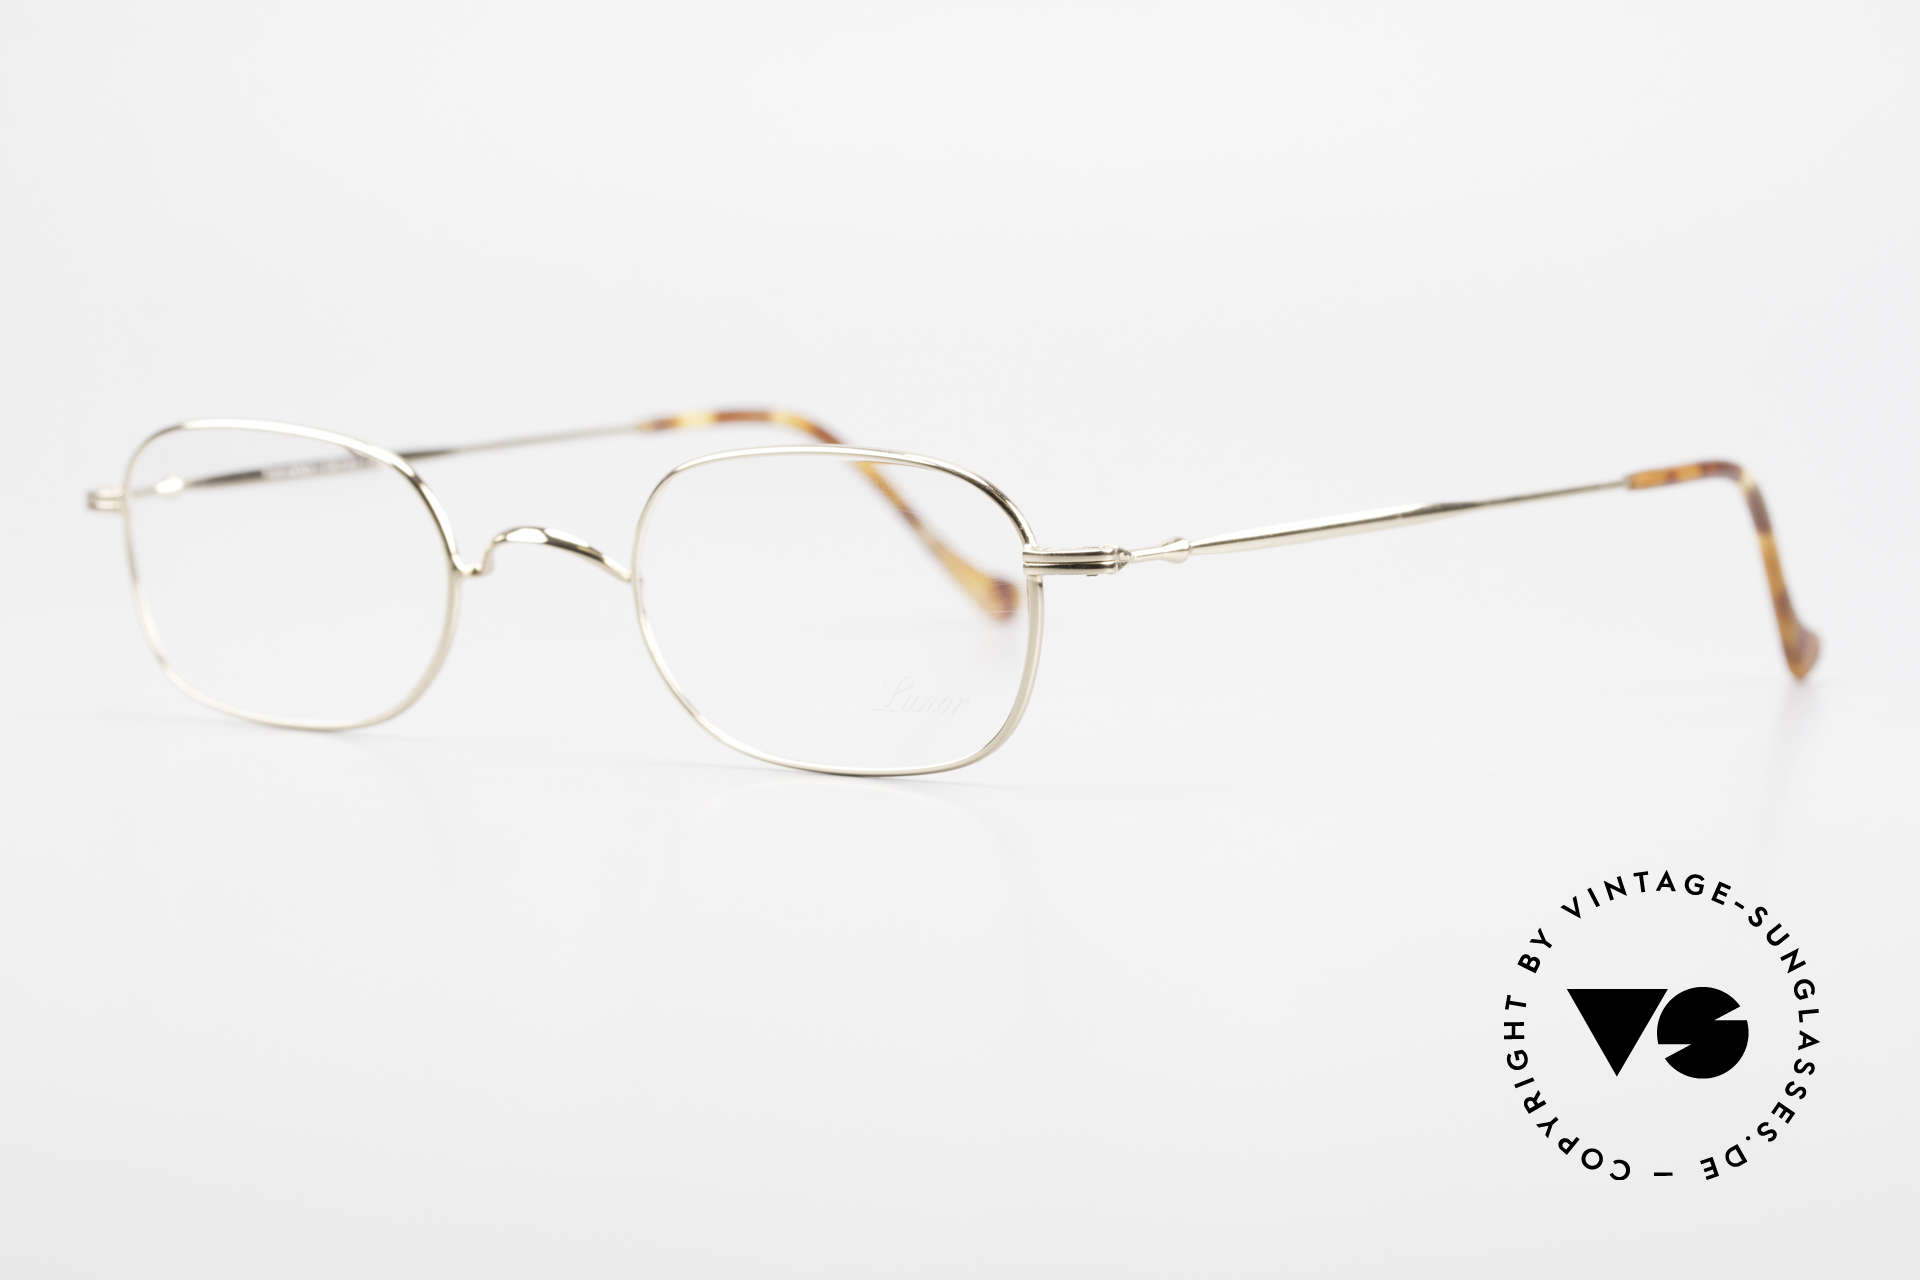 """Lunor 322 Classic Vintage Eyeglasses 90s, well-known for the """"W-bridge"""" & the plain frame designs, Made for Men and Women"""